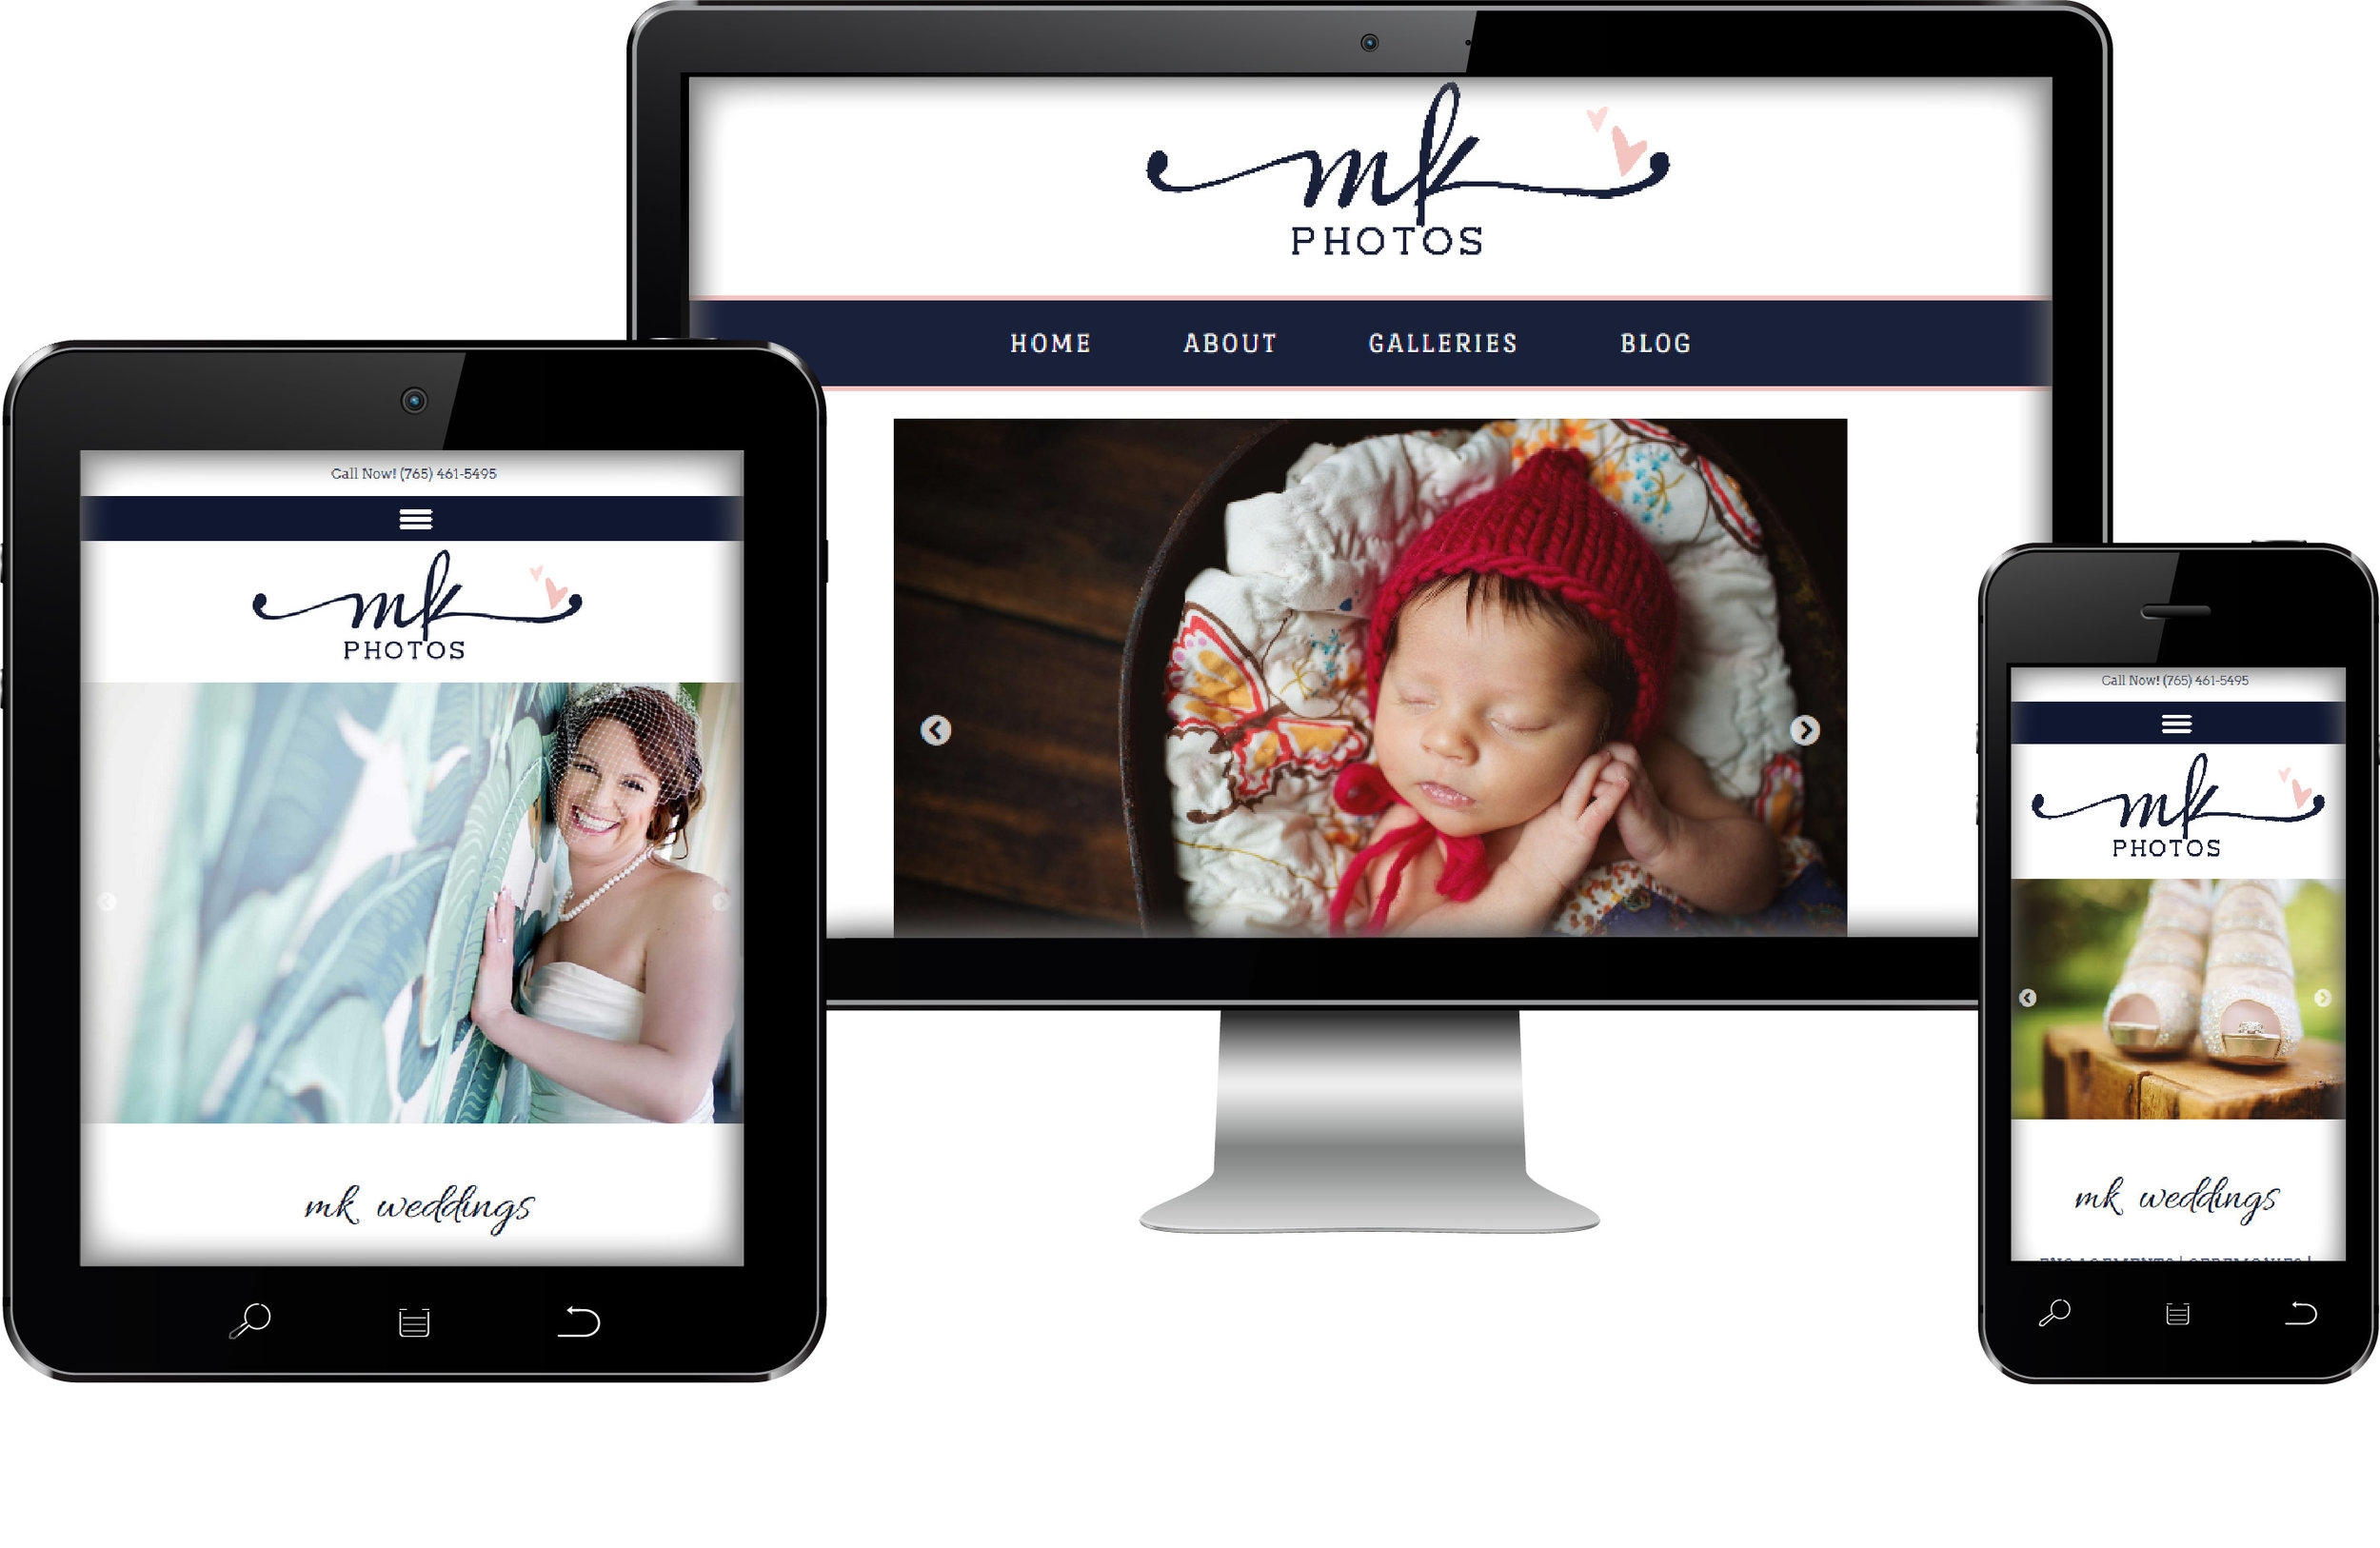 Mk Photos Web Site Design